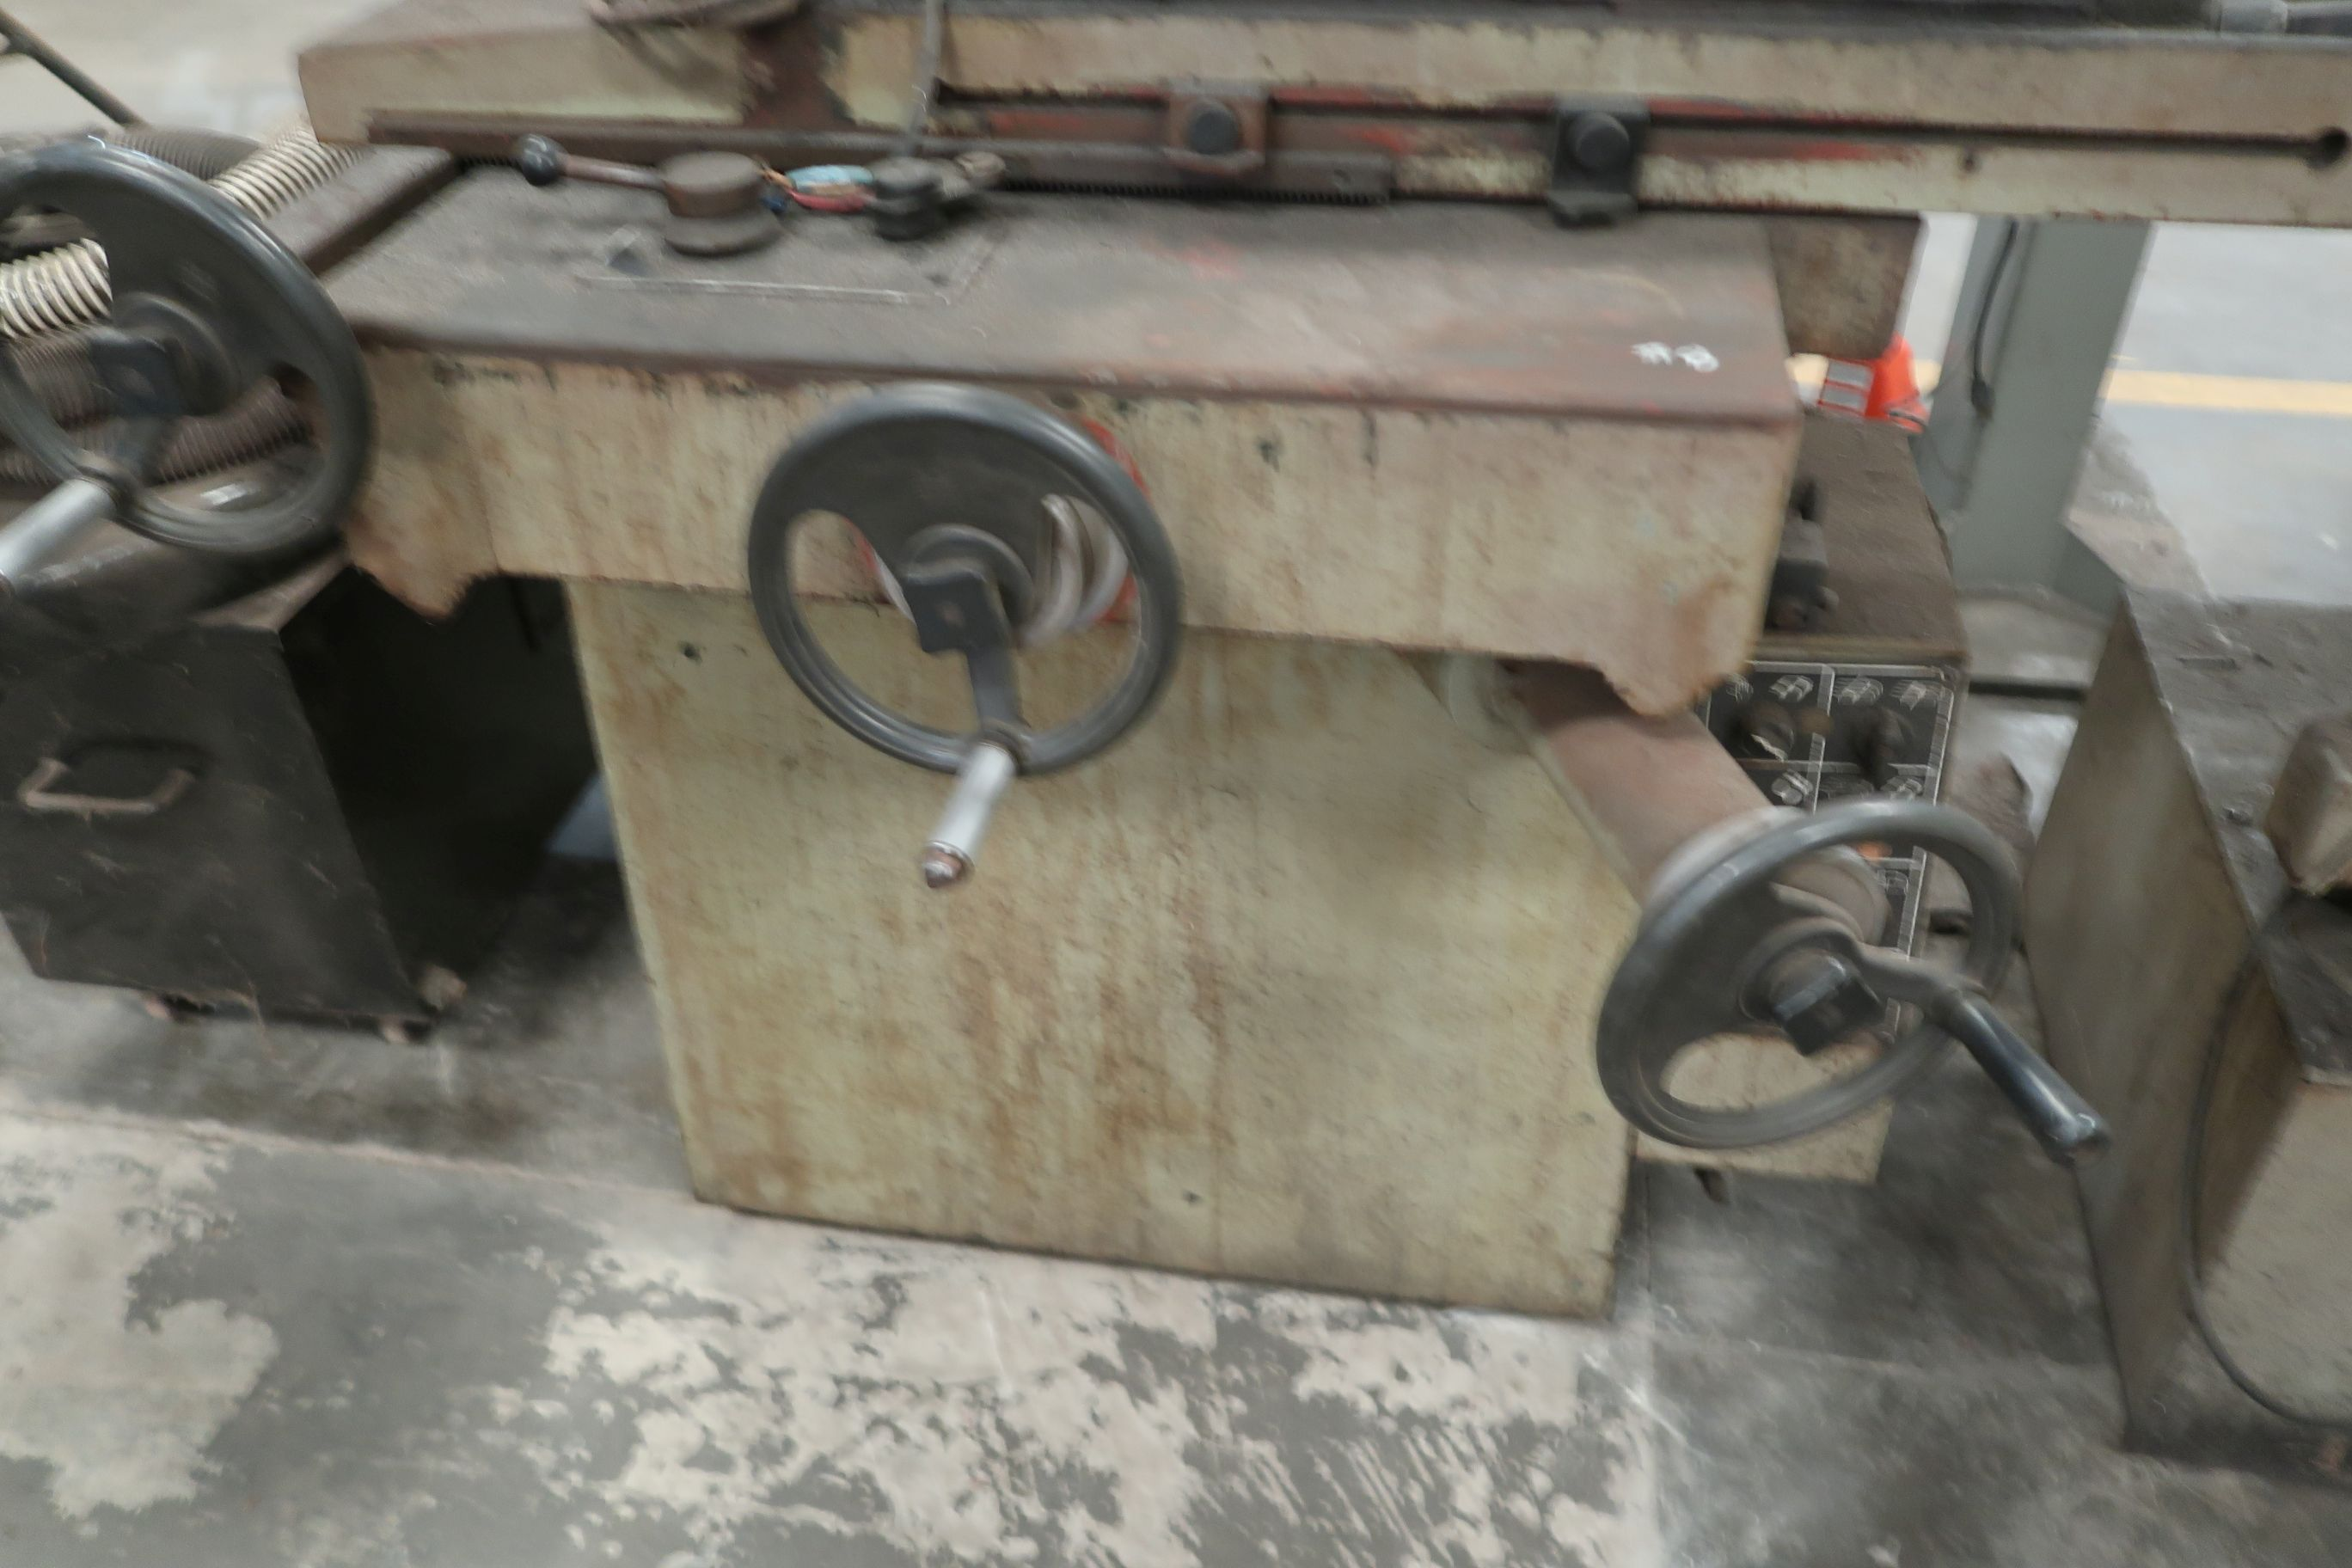 """8"""" X 16"""" KENT MODEL KGS-250AH HYDRAULIC SURFACE GRINDER; S/N 781202-17 WITH DUST COLLECTOR - Image 4 of 7"""